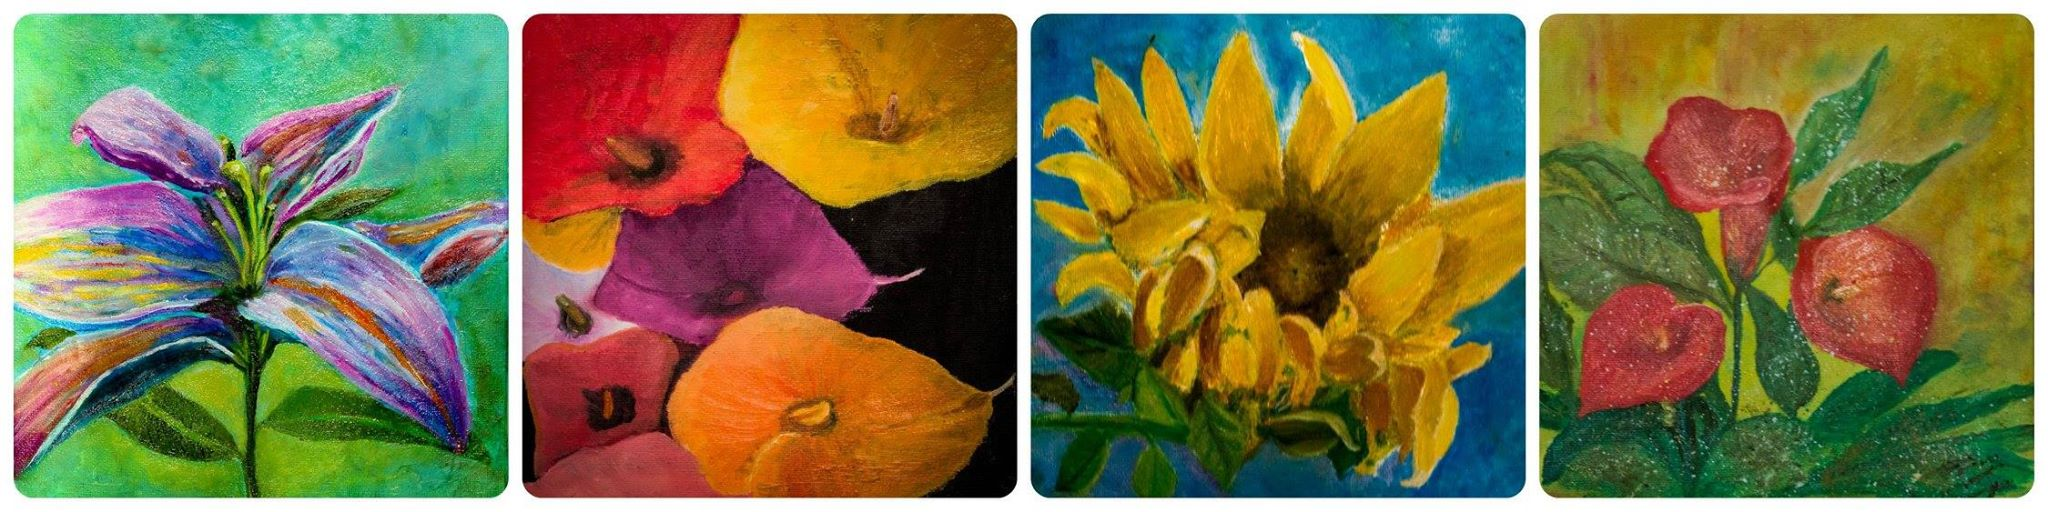 Gergana's 2015 paintings!